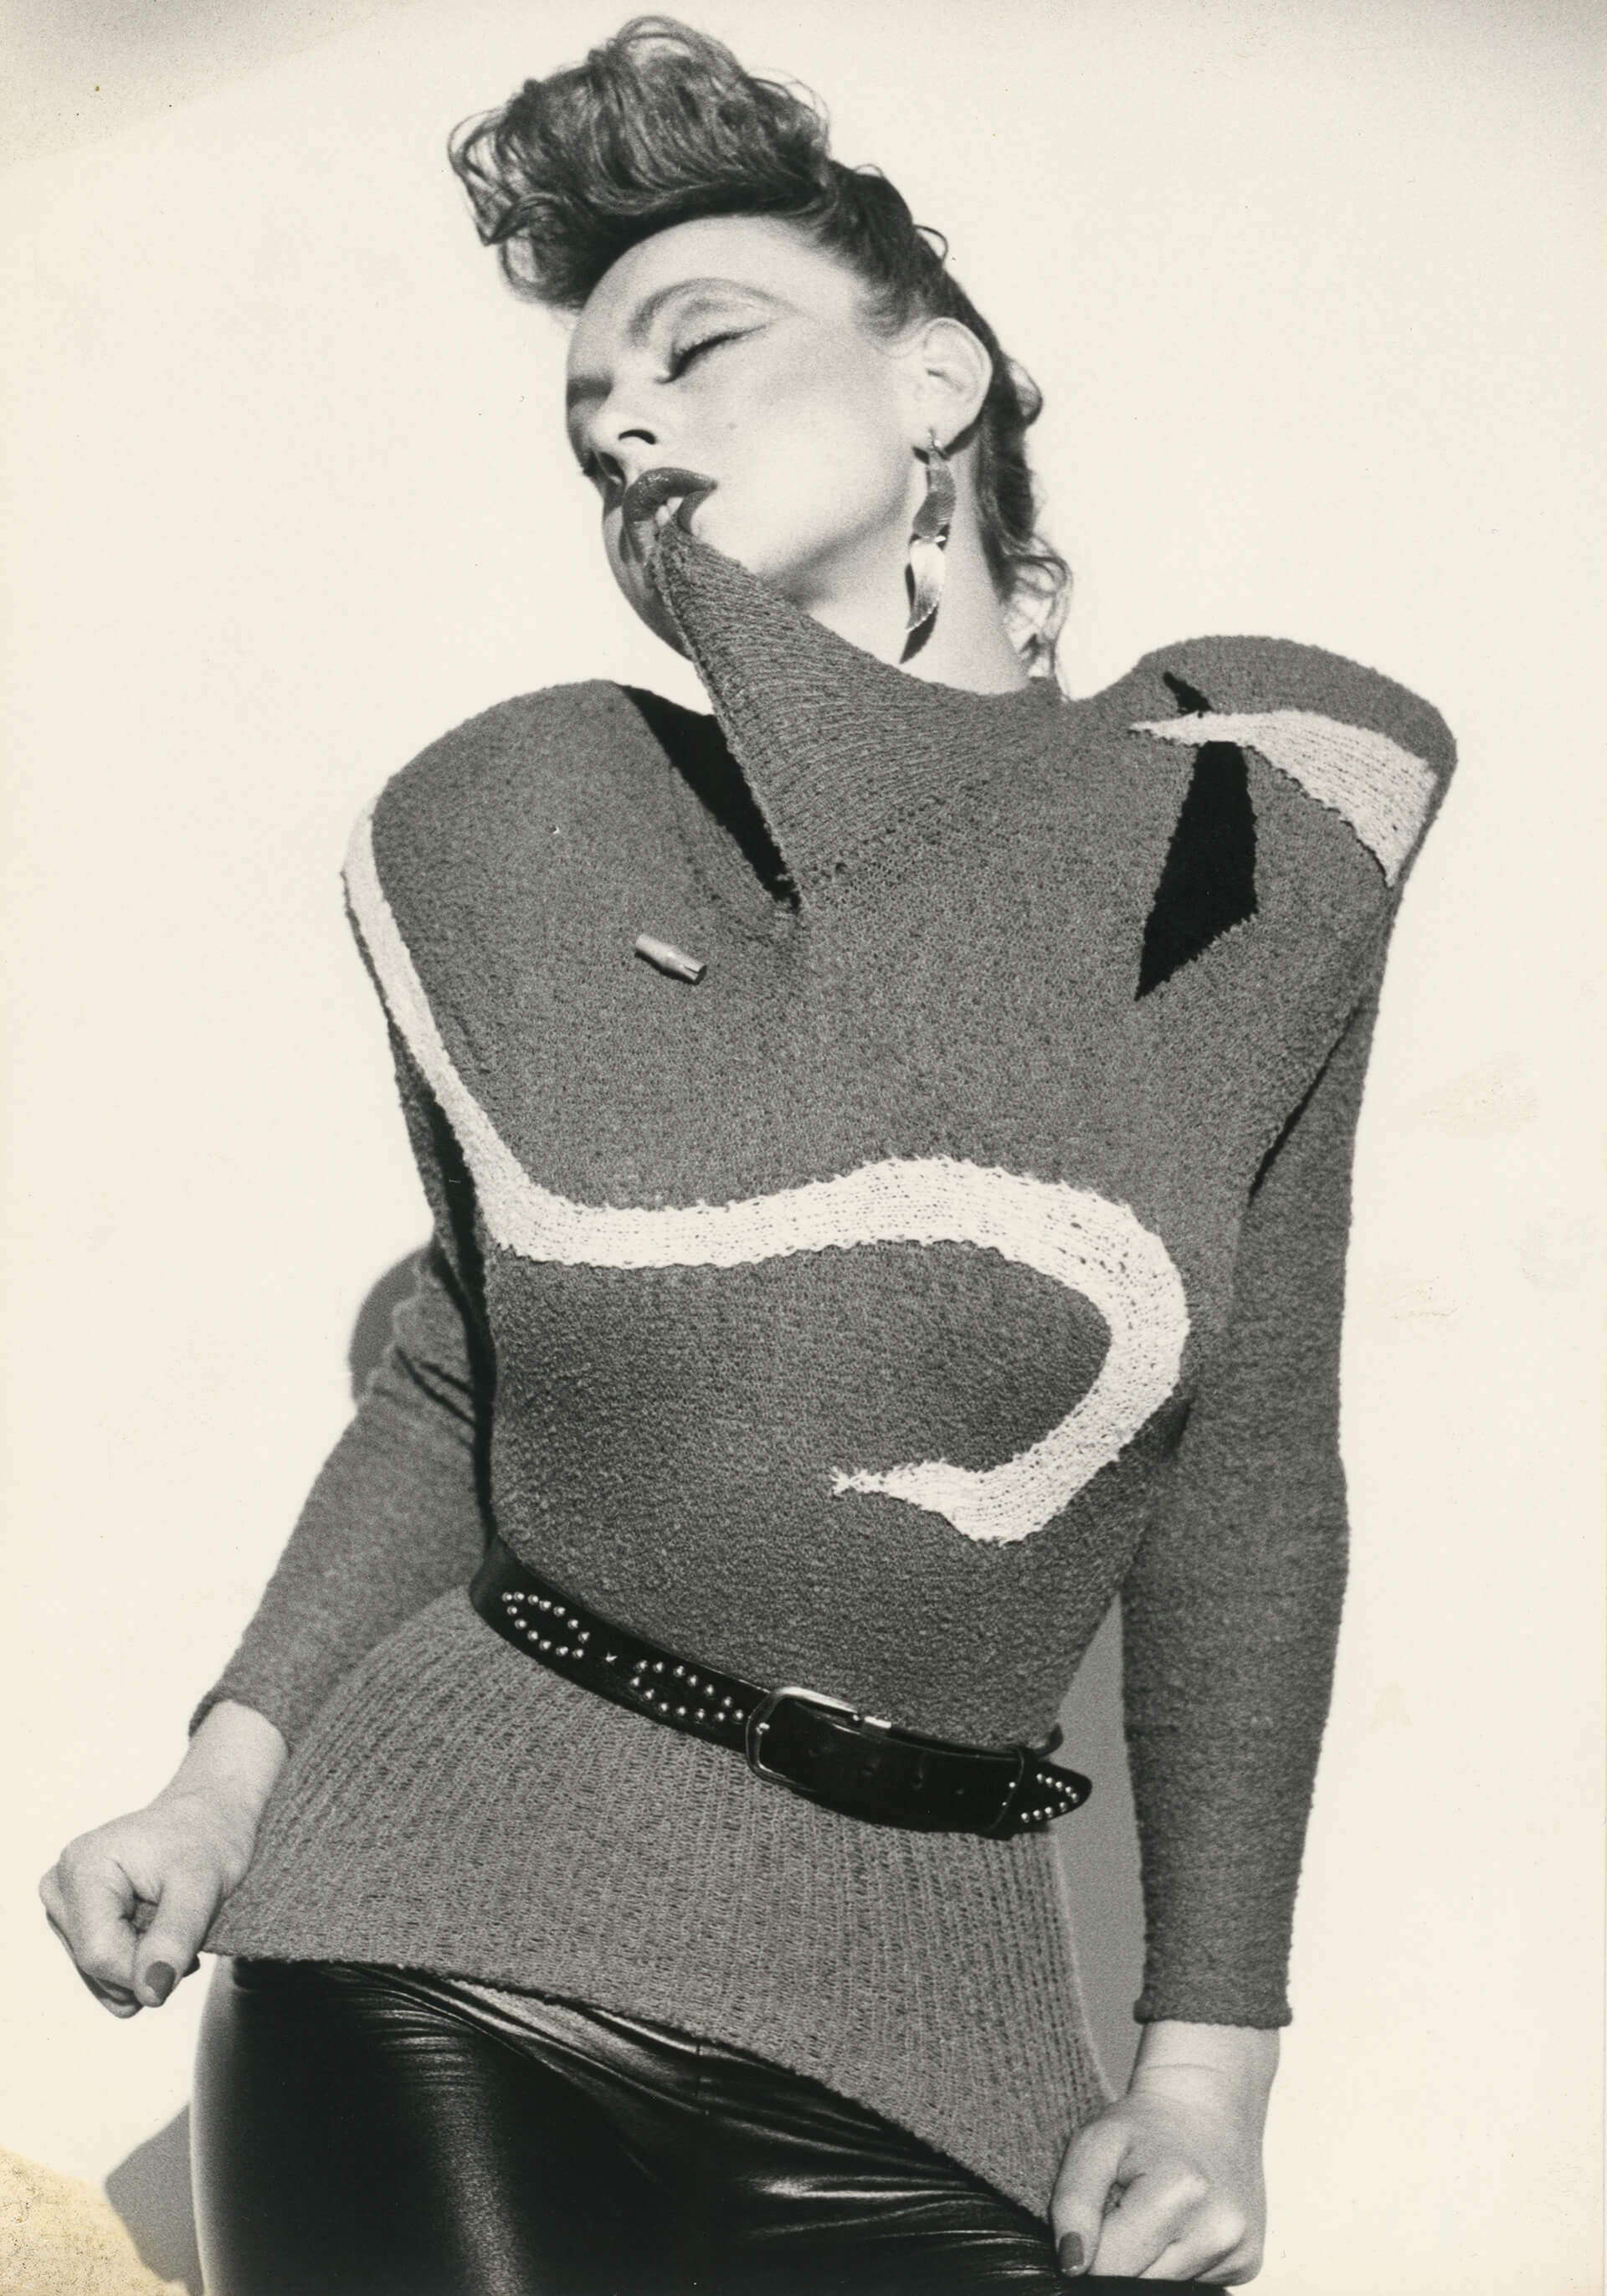 Claudia Skoda, knitwear design from the collection Fruits, ca. 1978, model: Irene Staub alias Lady Shiva) German Design 1949–1989, Two Countries, One History at Vitra Design Museum, Germany | STIRworld